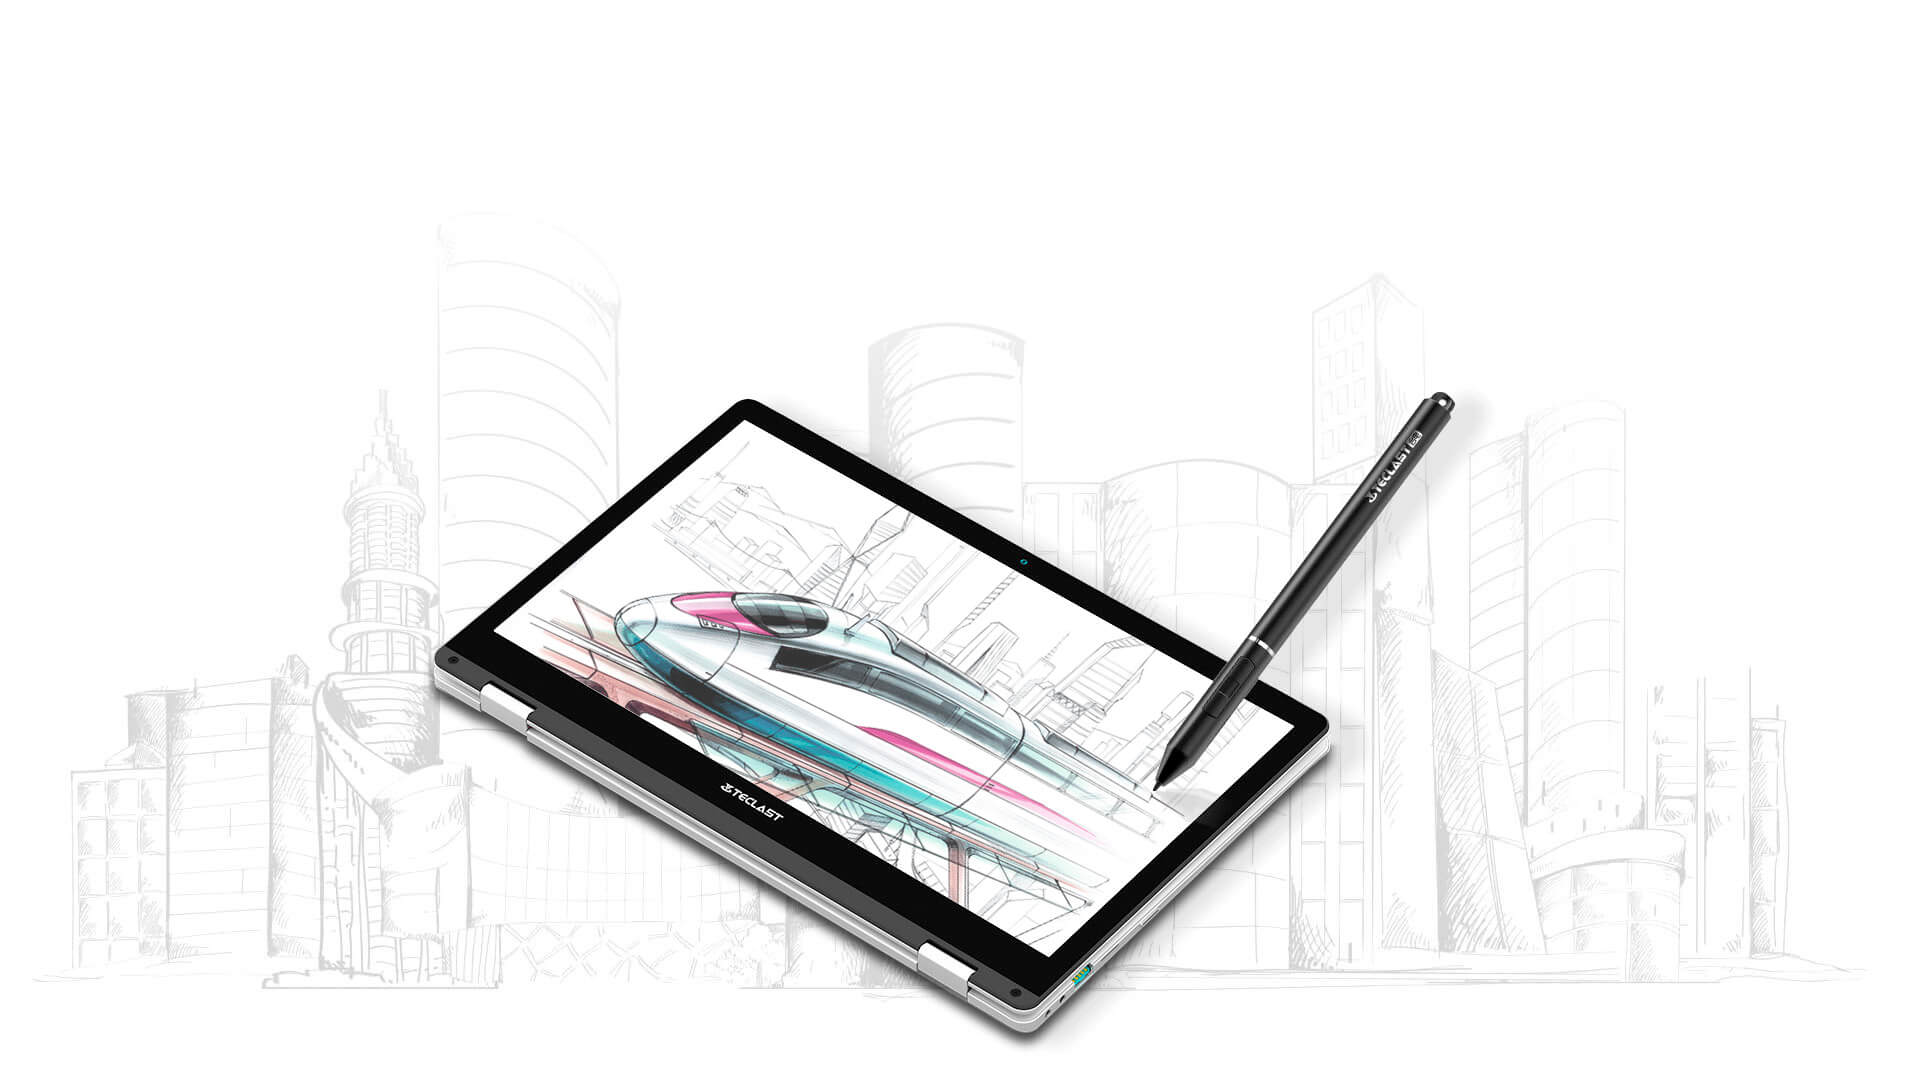 Teclast TL-T6 Stylus for Teclast F6 Plus Laptop